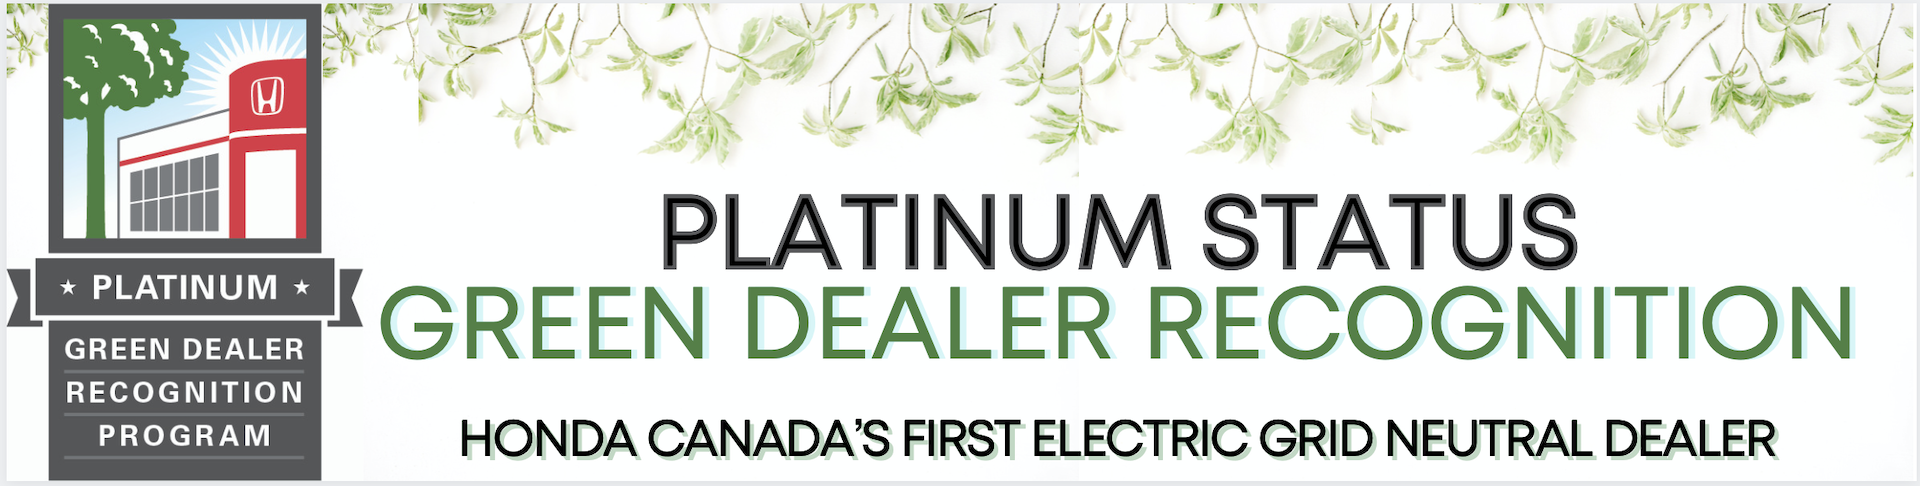 Platinum Honda Green Dealer; 4x Best Auto Dealer in the Foothills; 2x Honda Canada Driving Excellence Dealer, 4.9 Google Rating with 2500+ reviews.